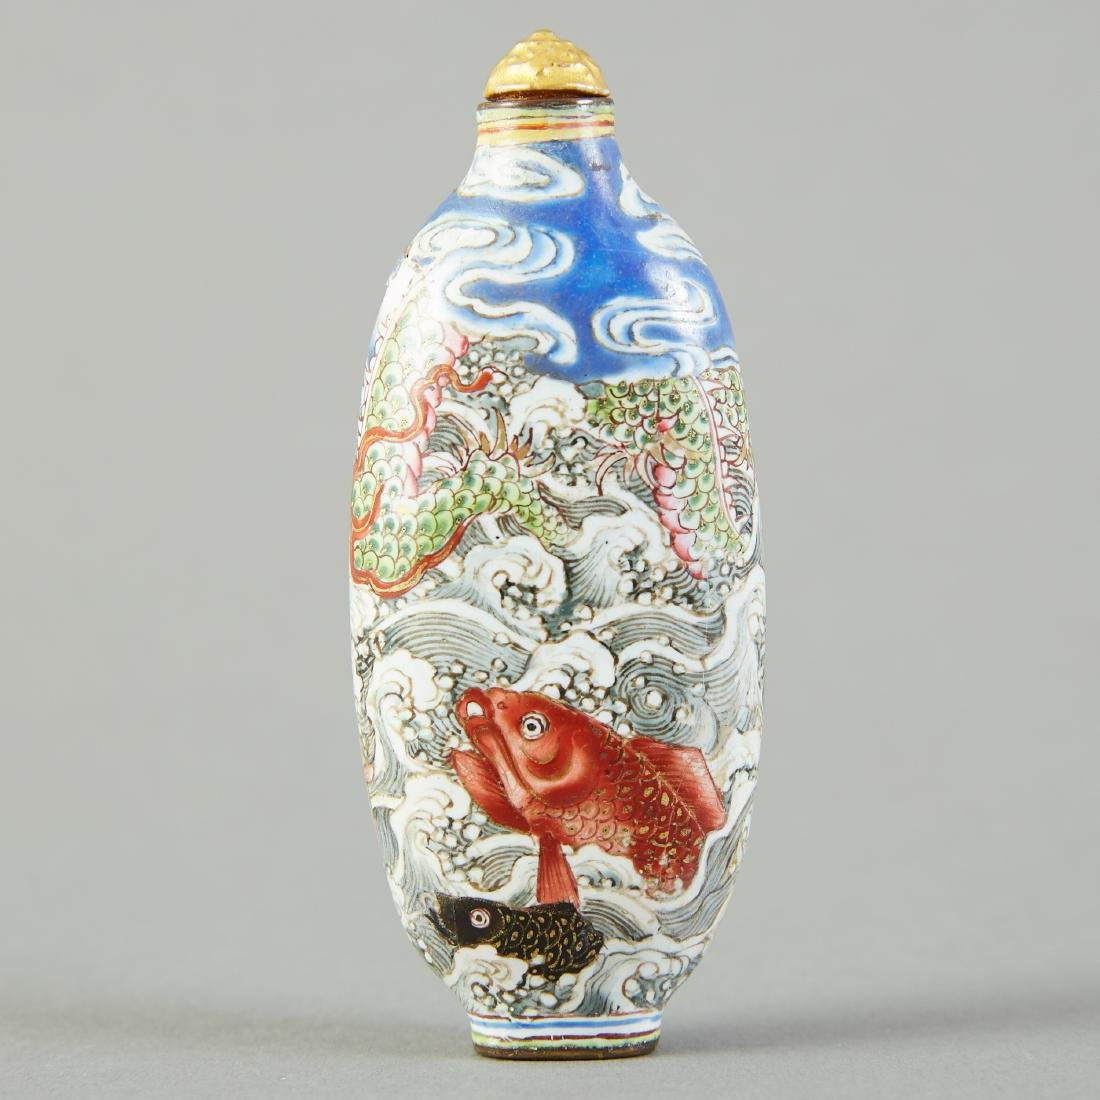 19th C. Chinese Qing Enameled Snuff Bottle Leaping Carp